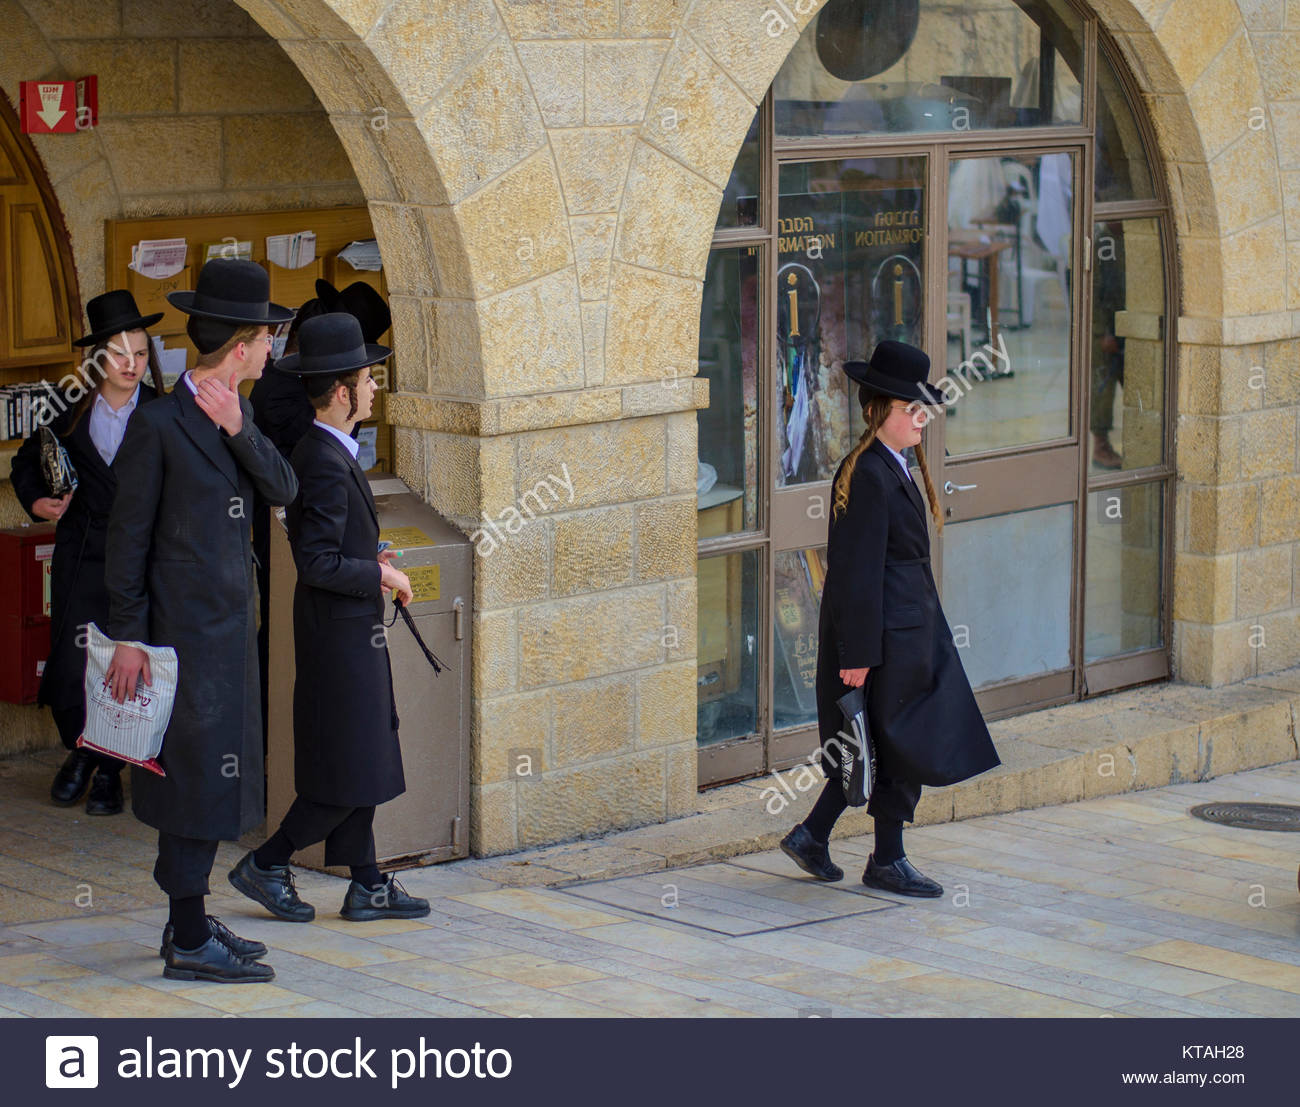 Jewish clothing stores